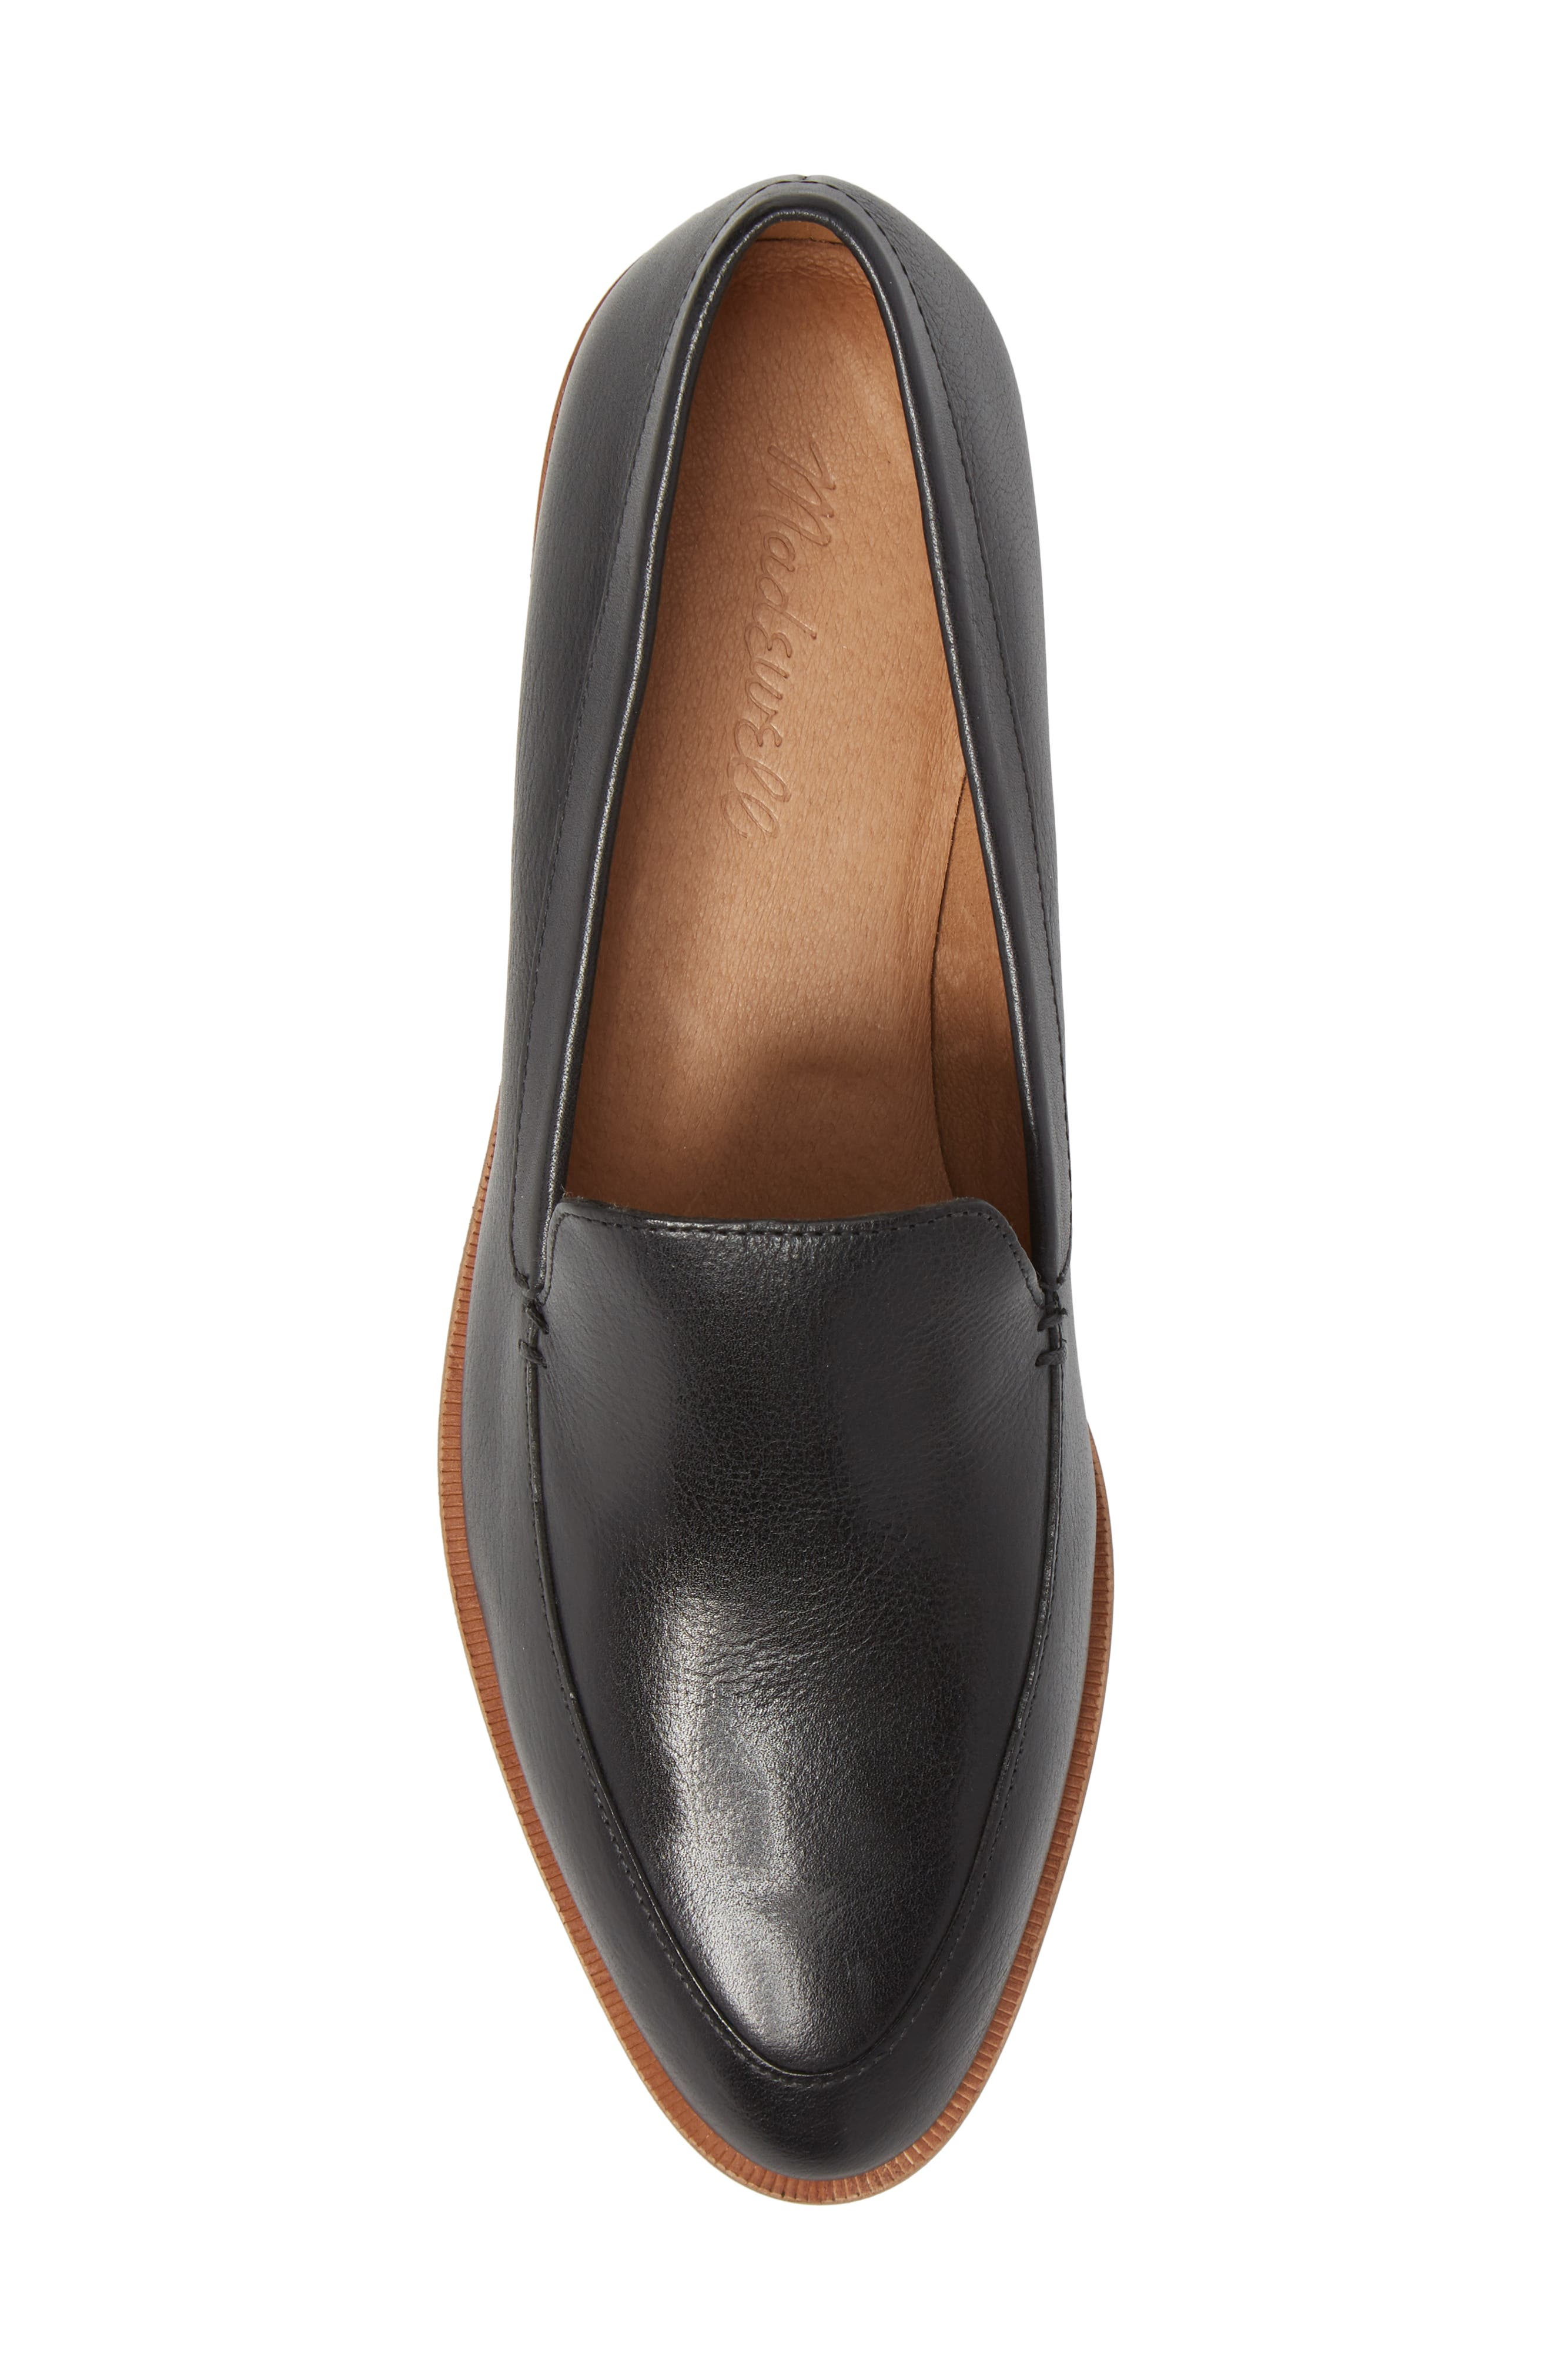 MADEWELL,                             The Frances Loafer,                             Alternate thumbnail 5, color,                             TRUE BLACK LEATHER